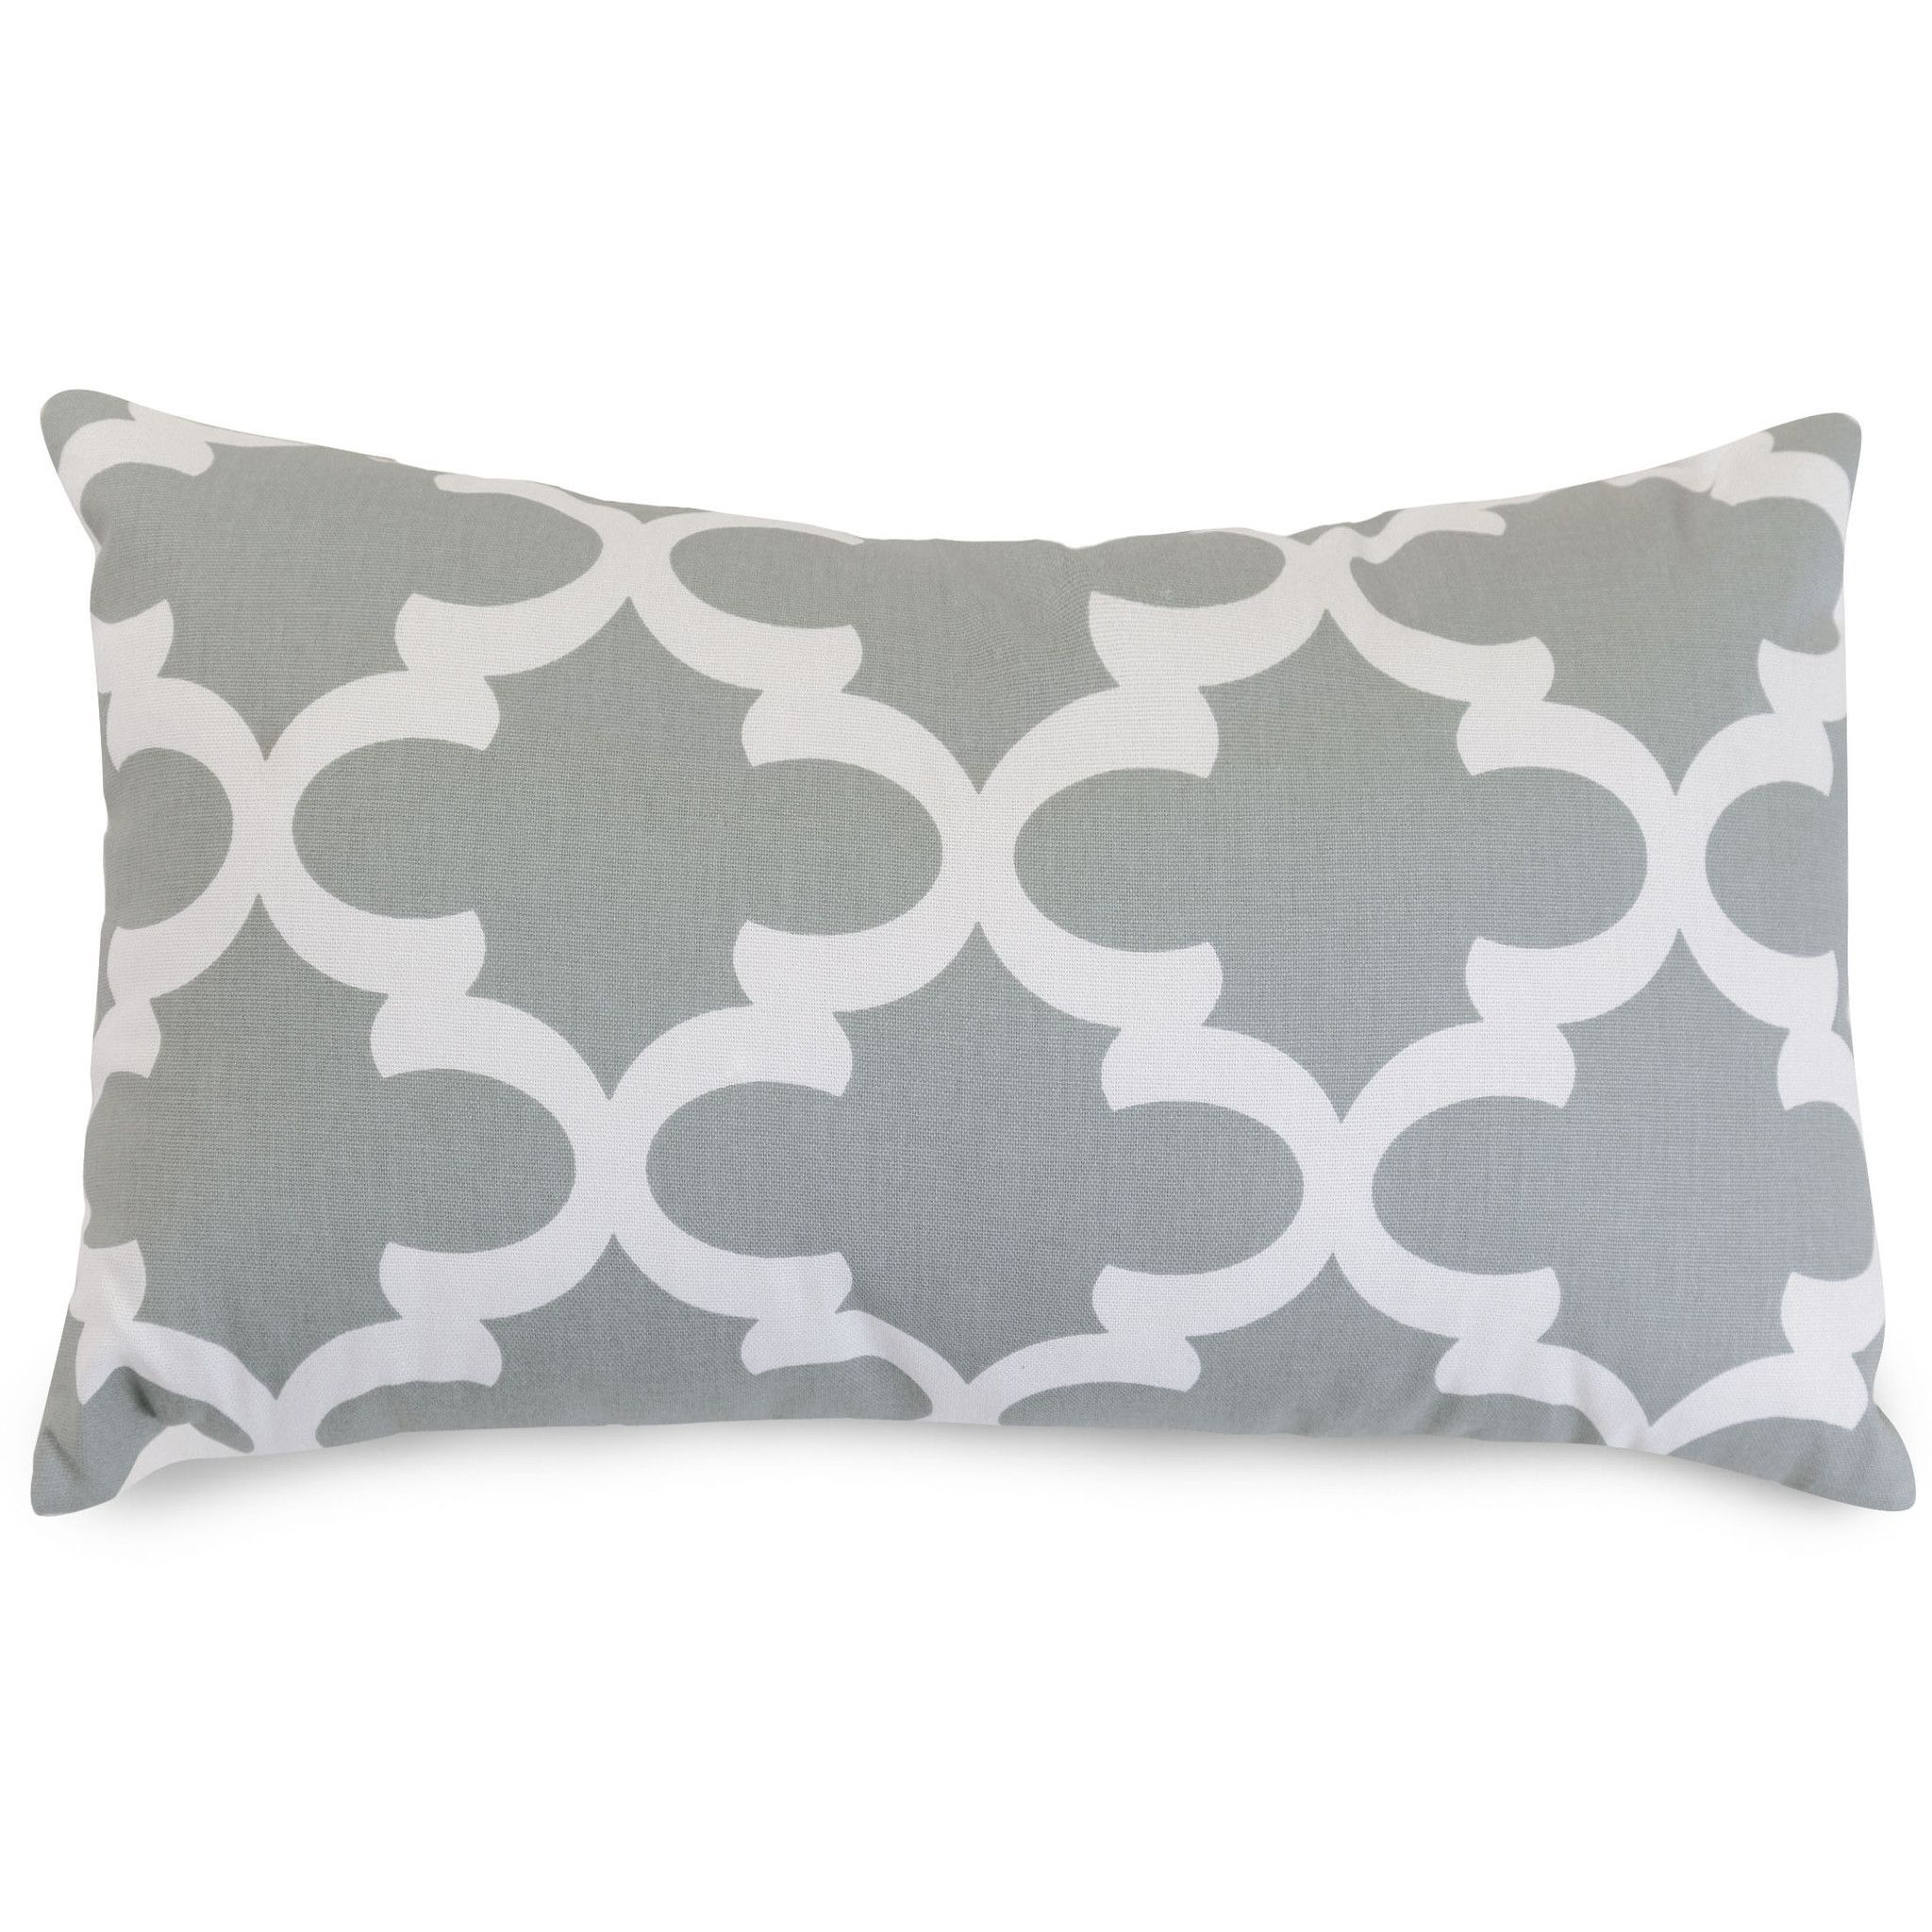 baby trellis wedge pregnancy dp grey gray support slipcover petite com pillows amazon pillow boppy with jersey